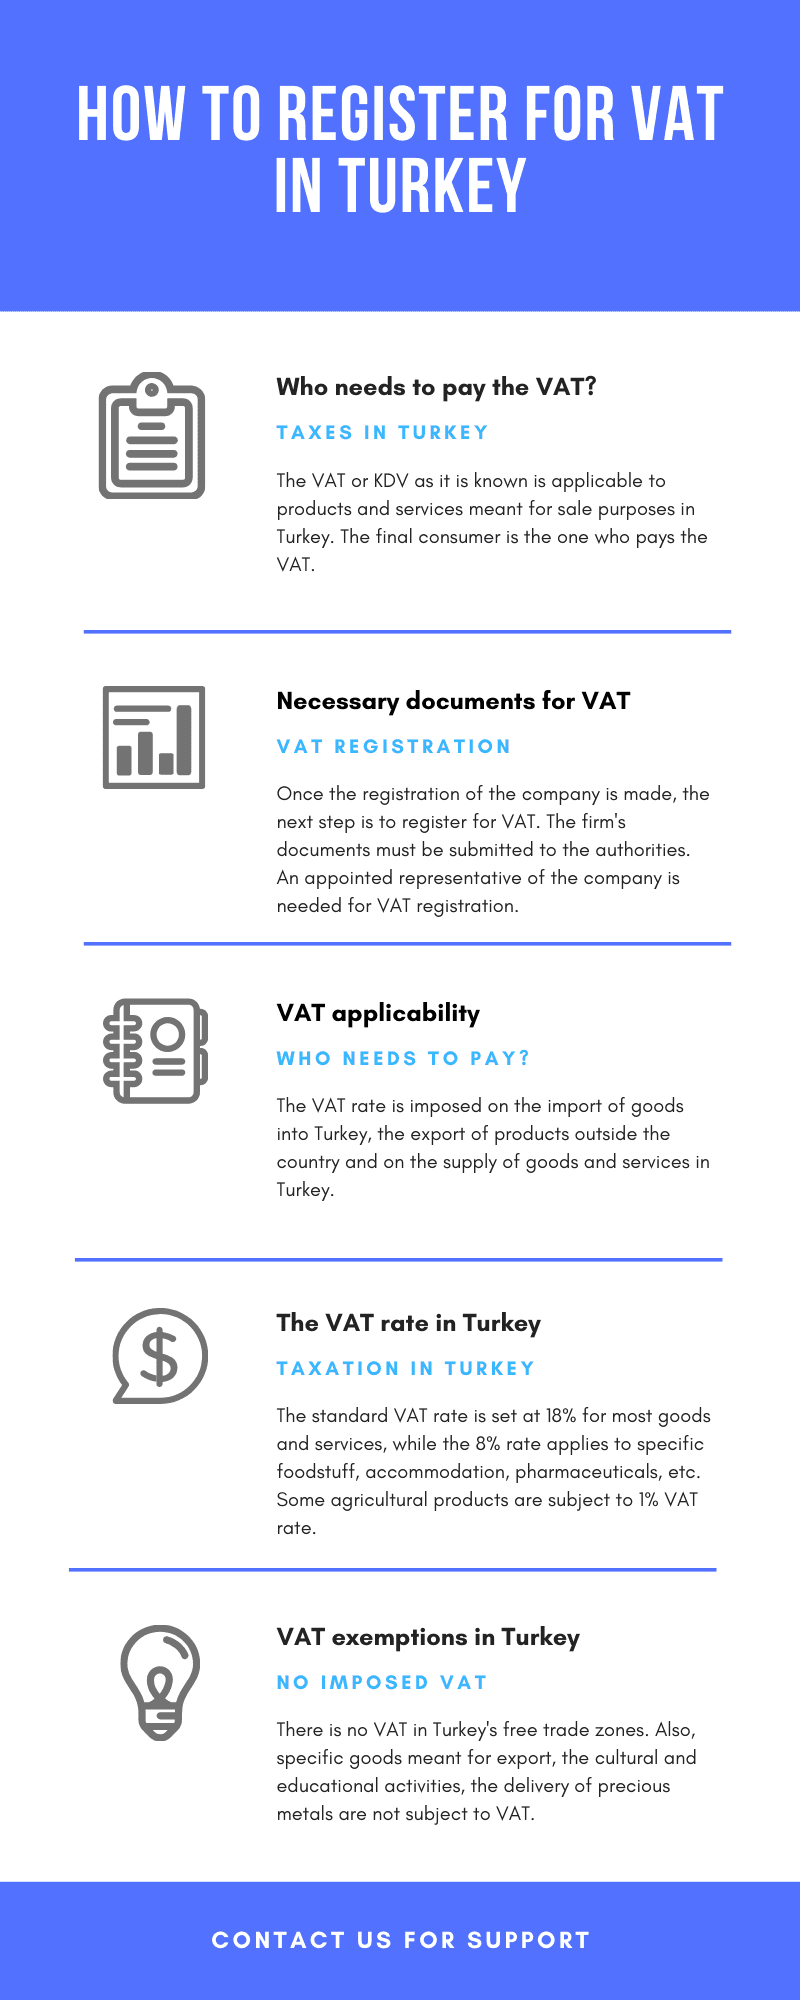 how to register for vat in turkey1.png